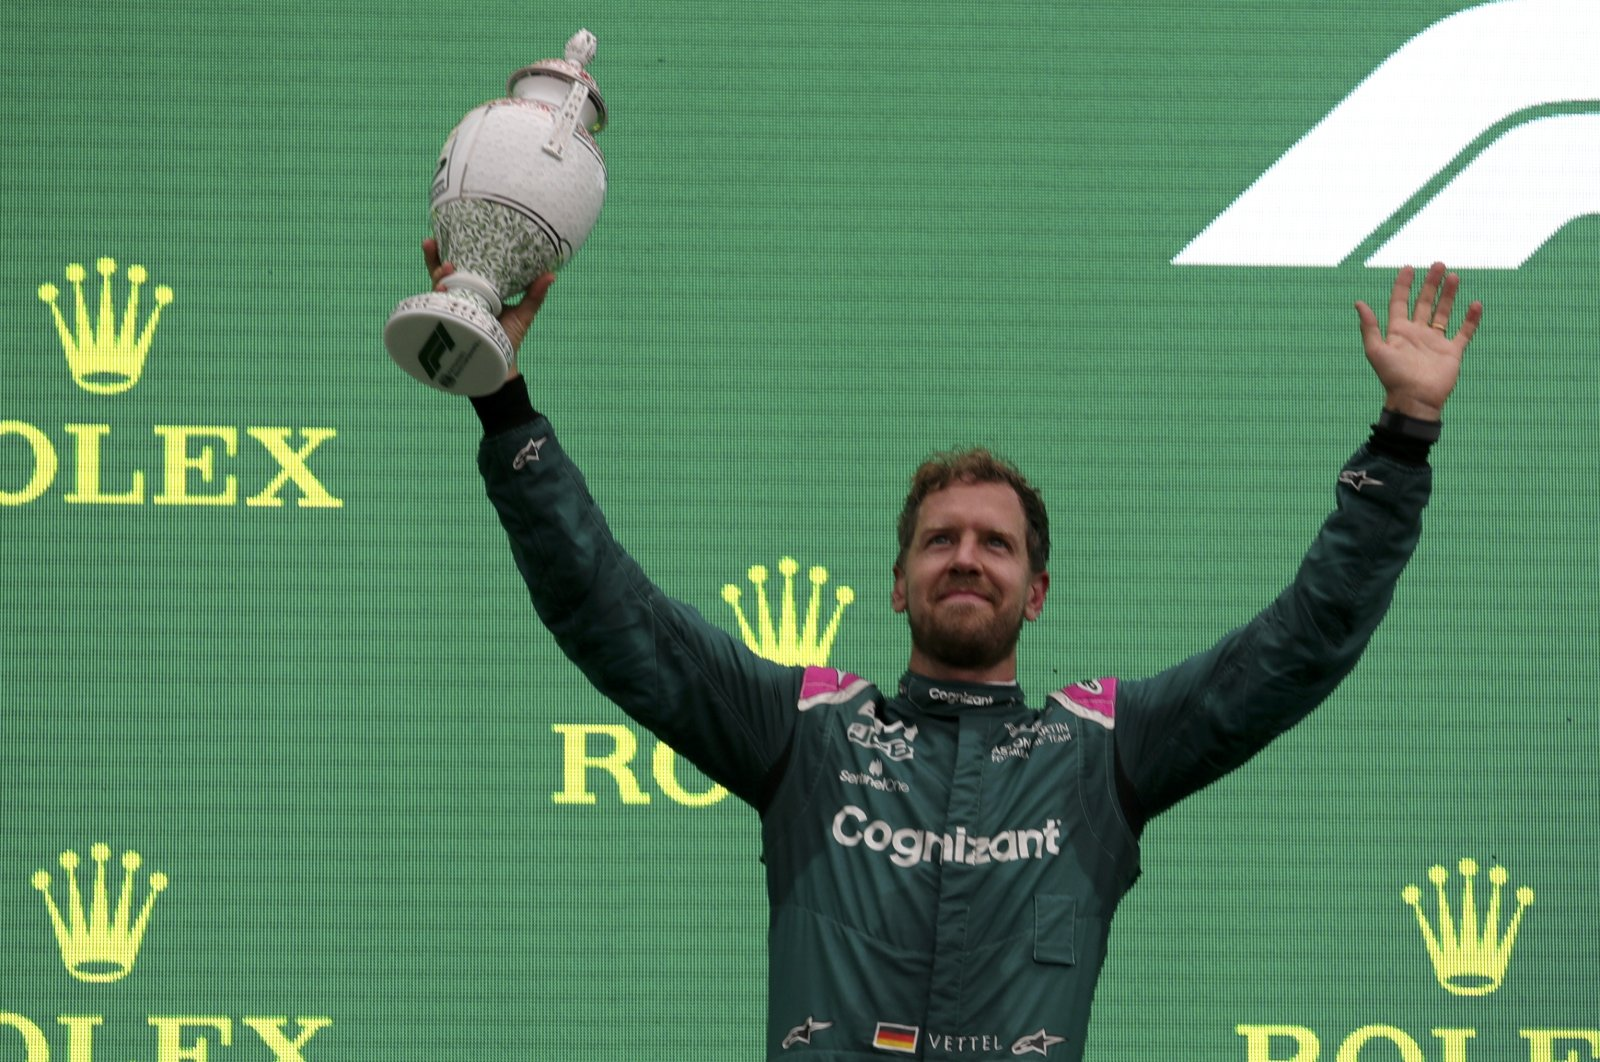 Aston Martin driver Sebastian Vettel holds up his trophy after placing second after the F1 Hungarian GP at the Hungaroring racetrack in Mogyorod, Hungary, Aug. 1, 2021. (AP PHoto)